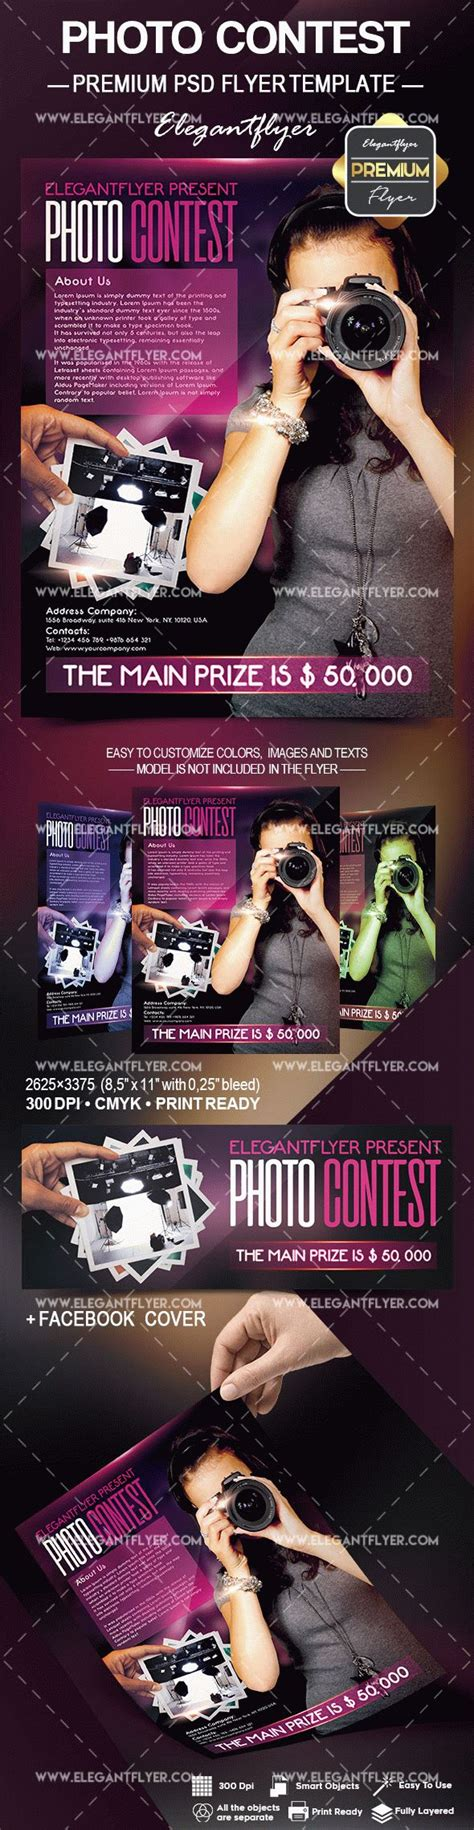 photo contest flyer template photo contest flyer psd template by elegantflyer